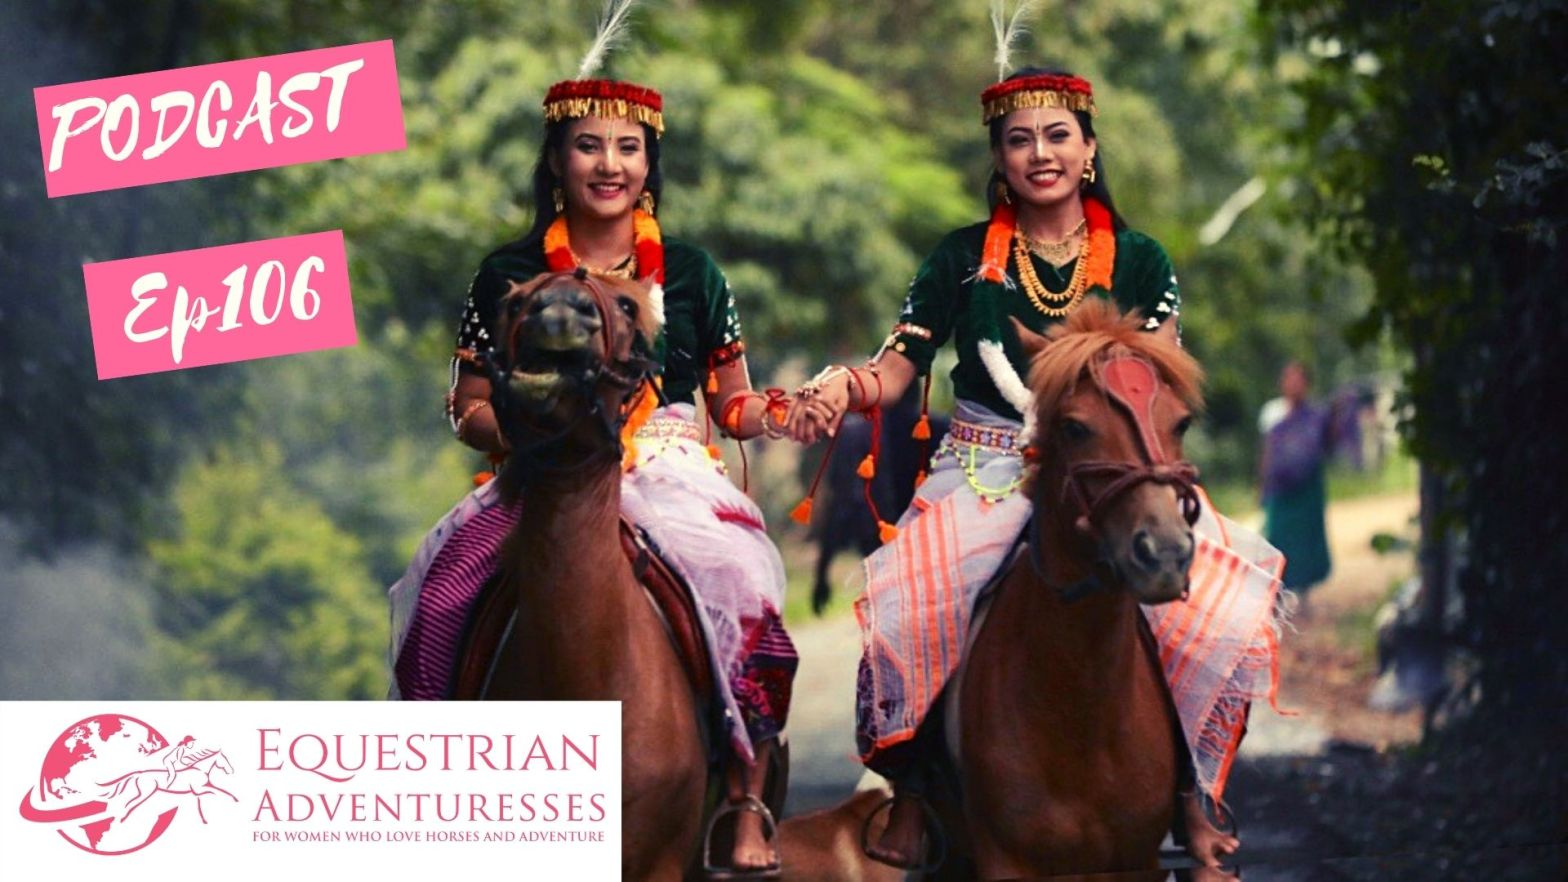 Equestrian Adventuresses Travel and Horse Podcast Ep 105 - Polo & Ponies - Shooting films about Horse Cultures of North-East India